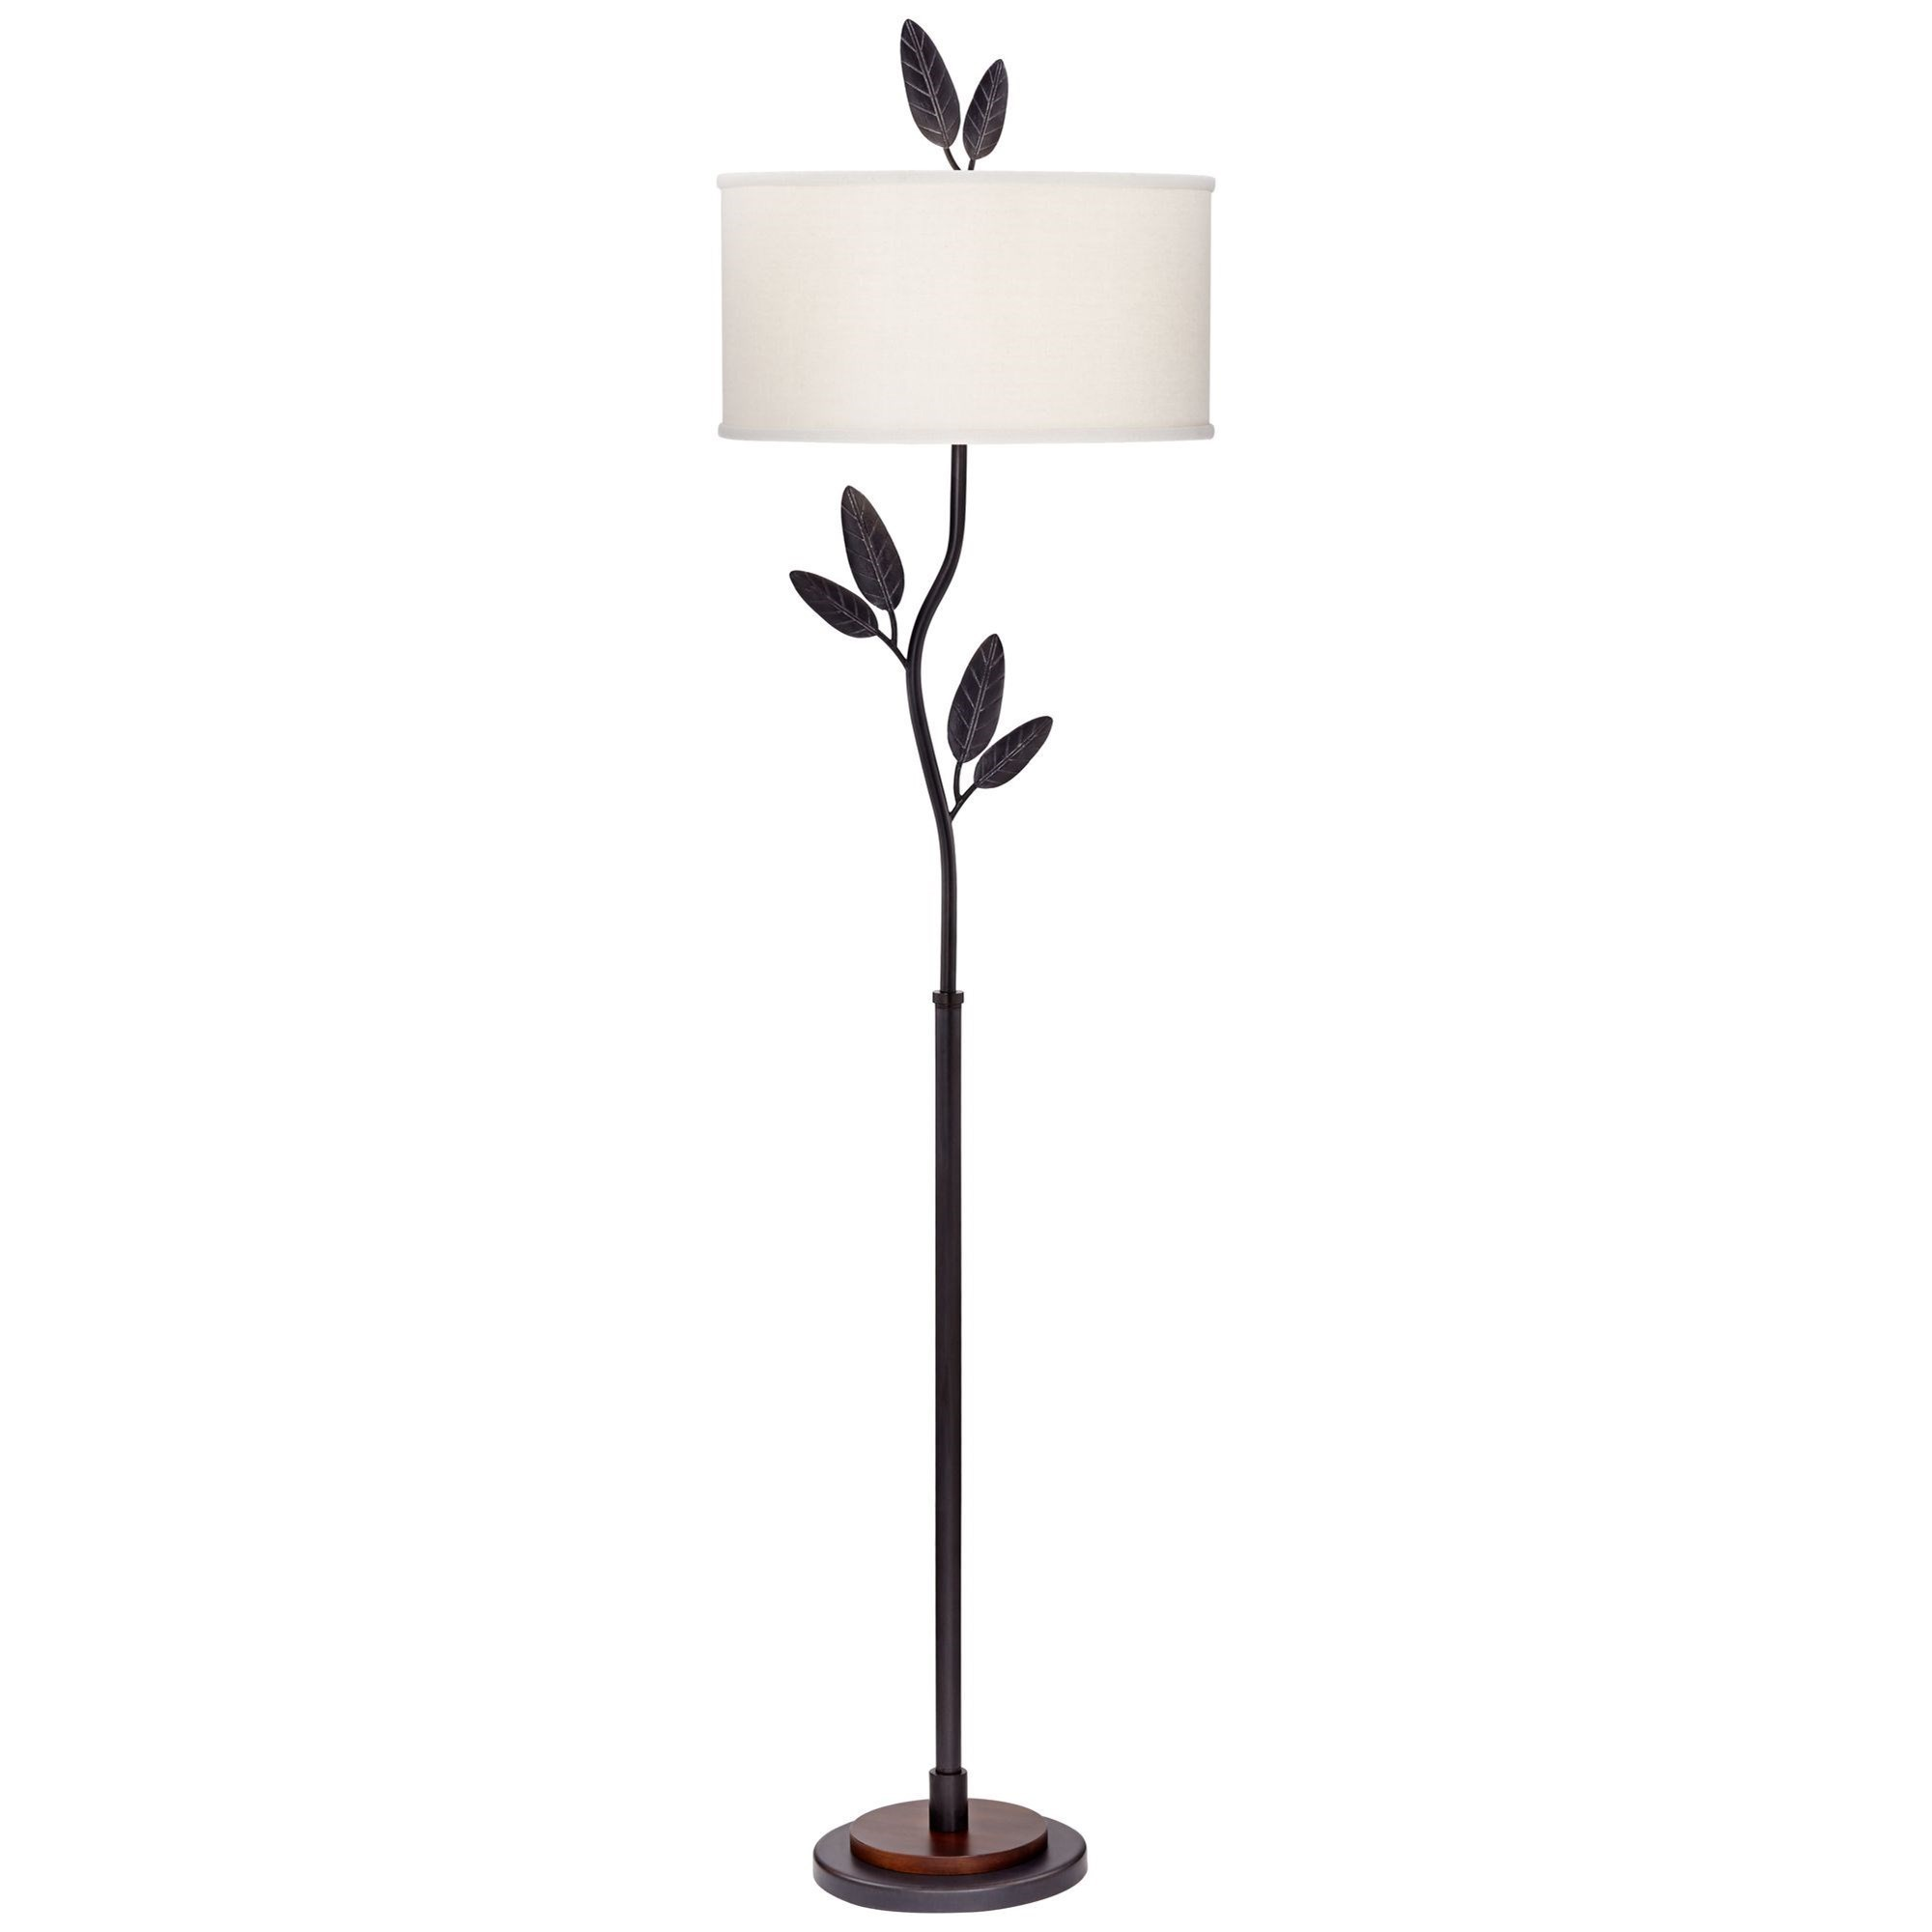 Lighting twigs Tree Branch Floor Lamps Cast Iron Leaves And Twigs Floor Lamp By Pacific Coast Lighting Miller Brothers Furniture Pacific Coast Lighting Floor Lamps 85328907 Cast Iron Leaves And